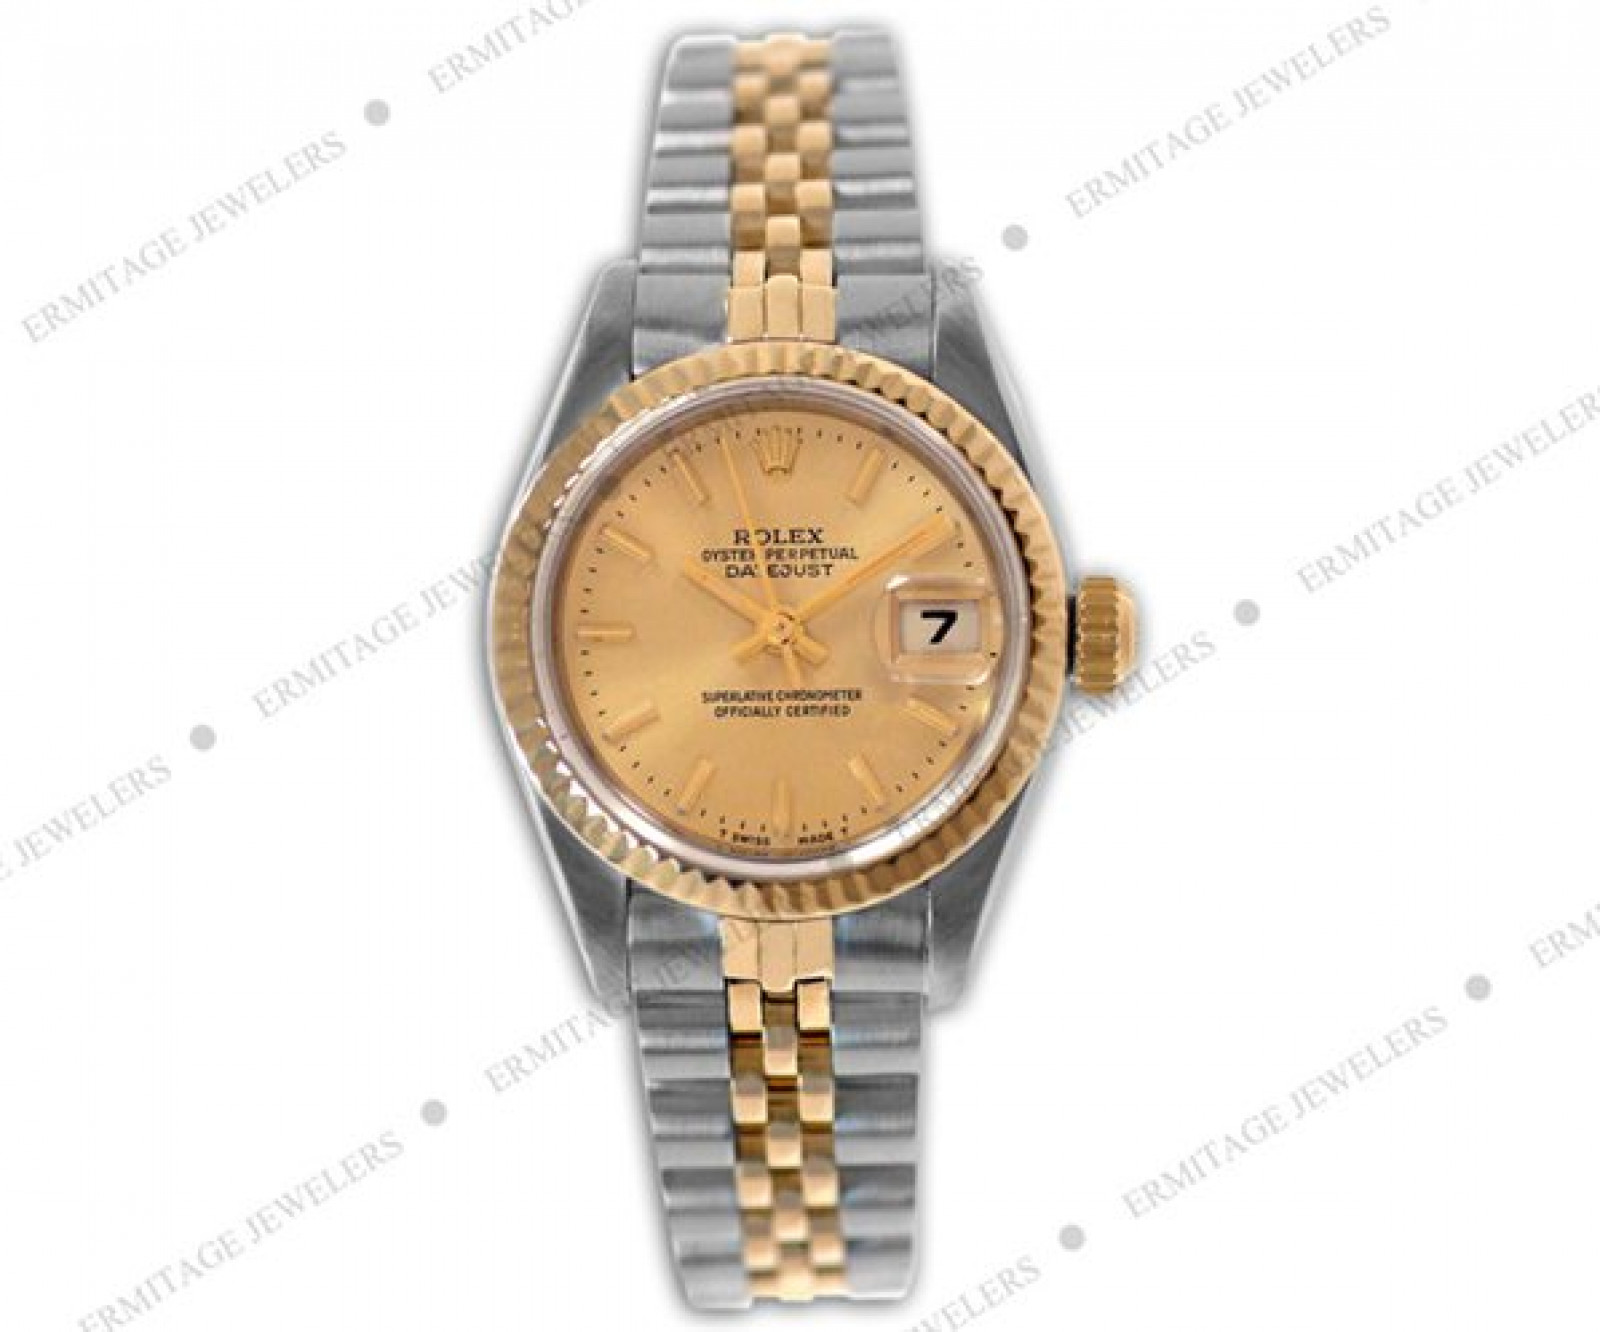 Pre-Owned Rolex Datejust 69173 Year 1987